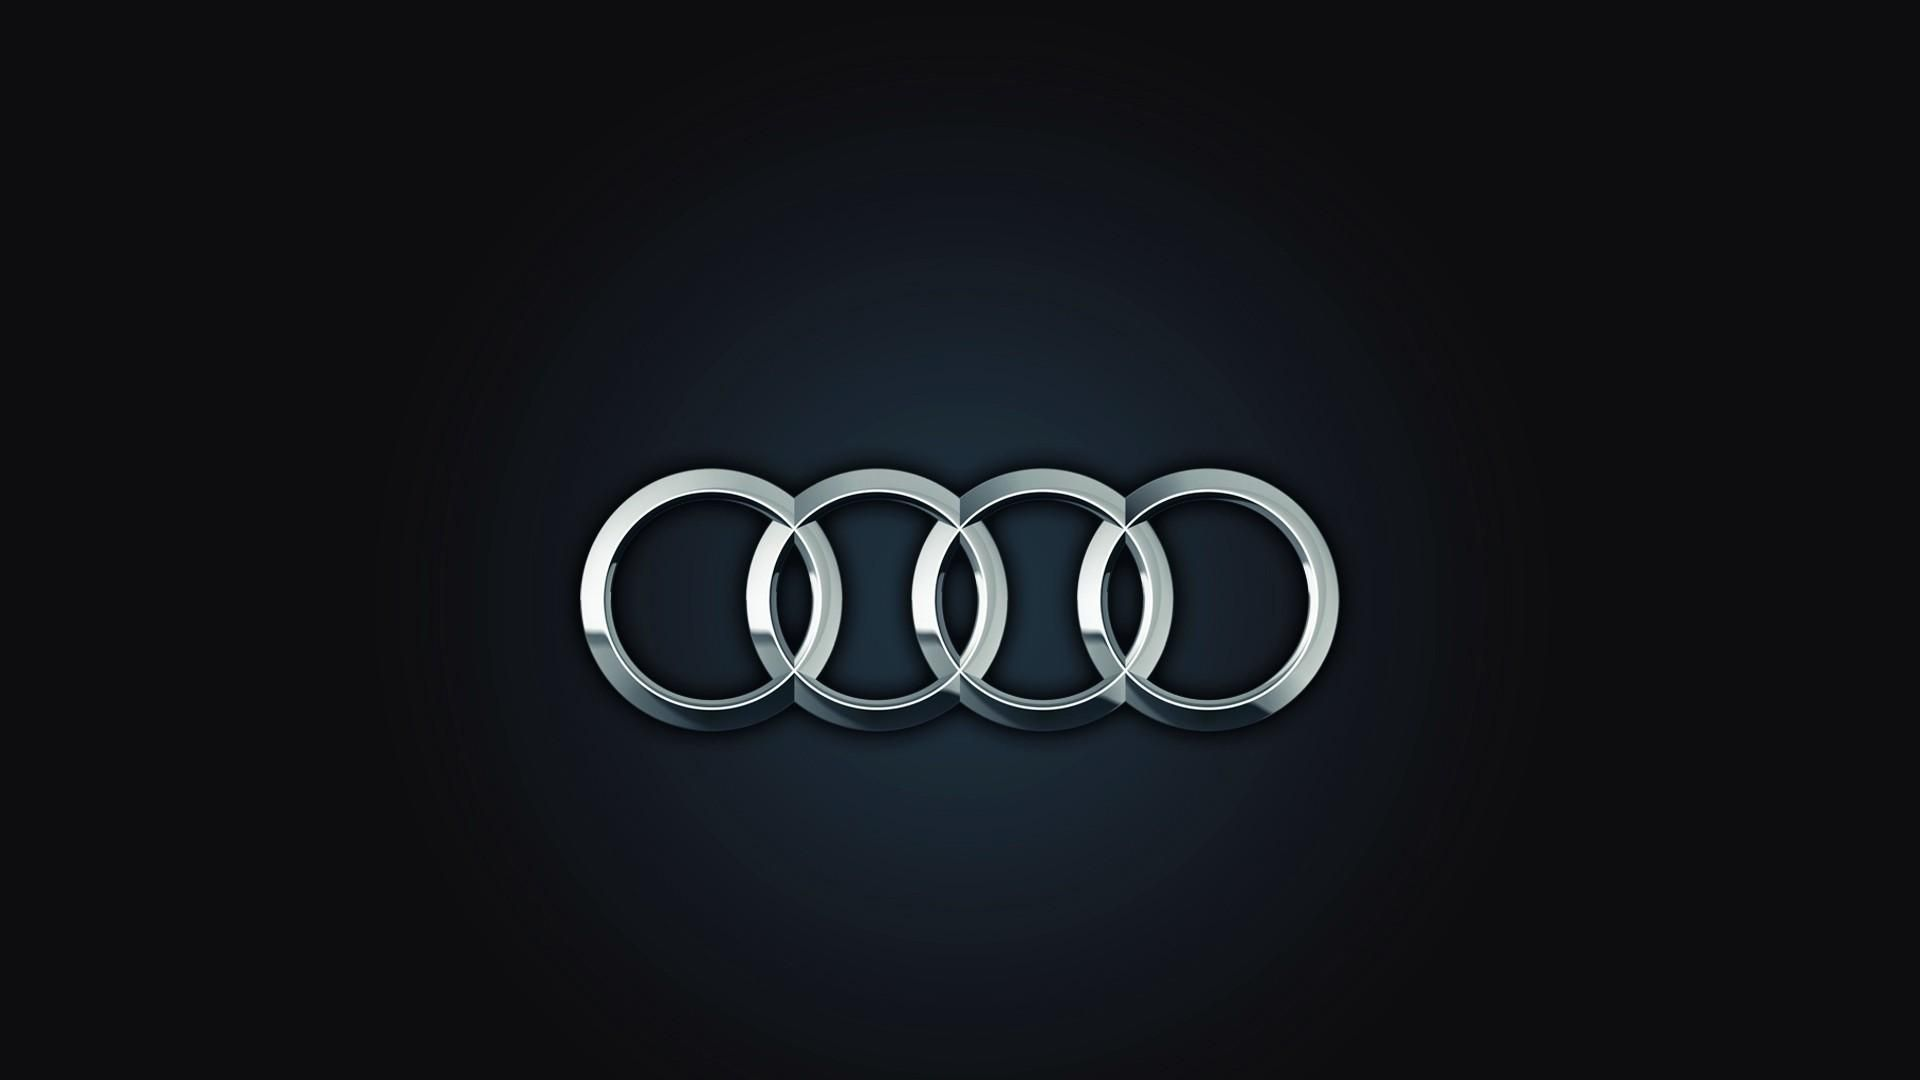 1920x1080 Audi Logo Wallpapers, Pictures, Images